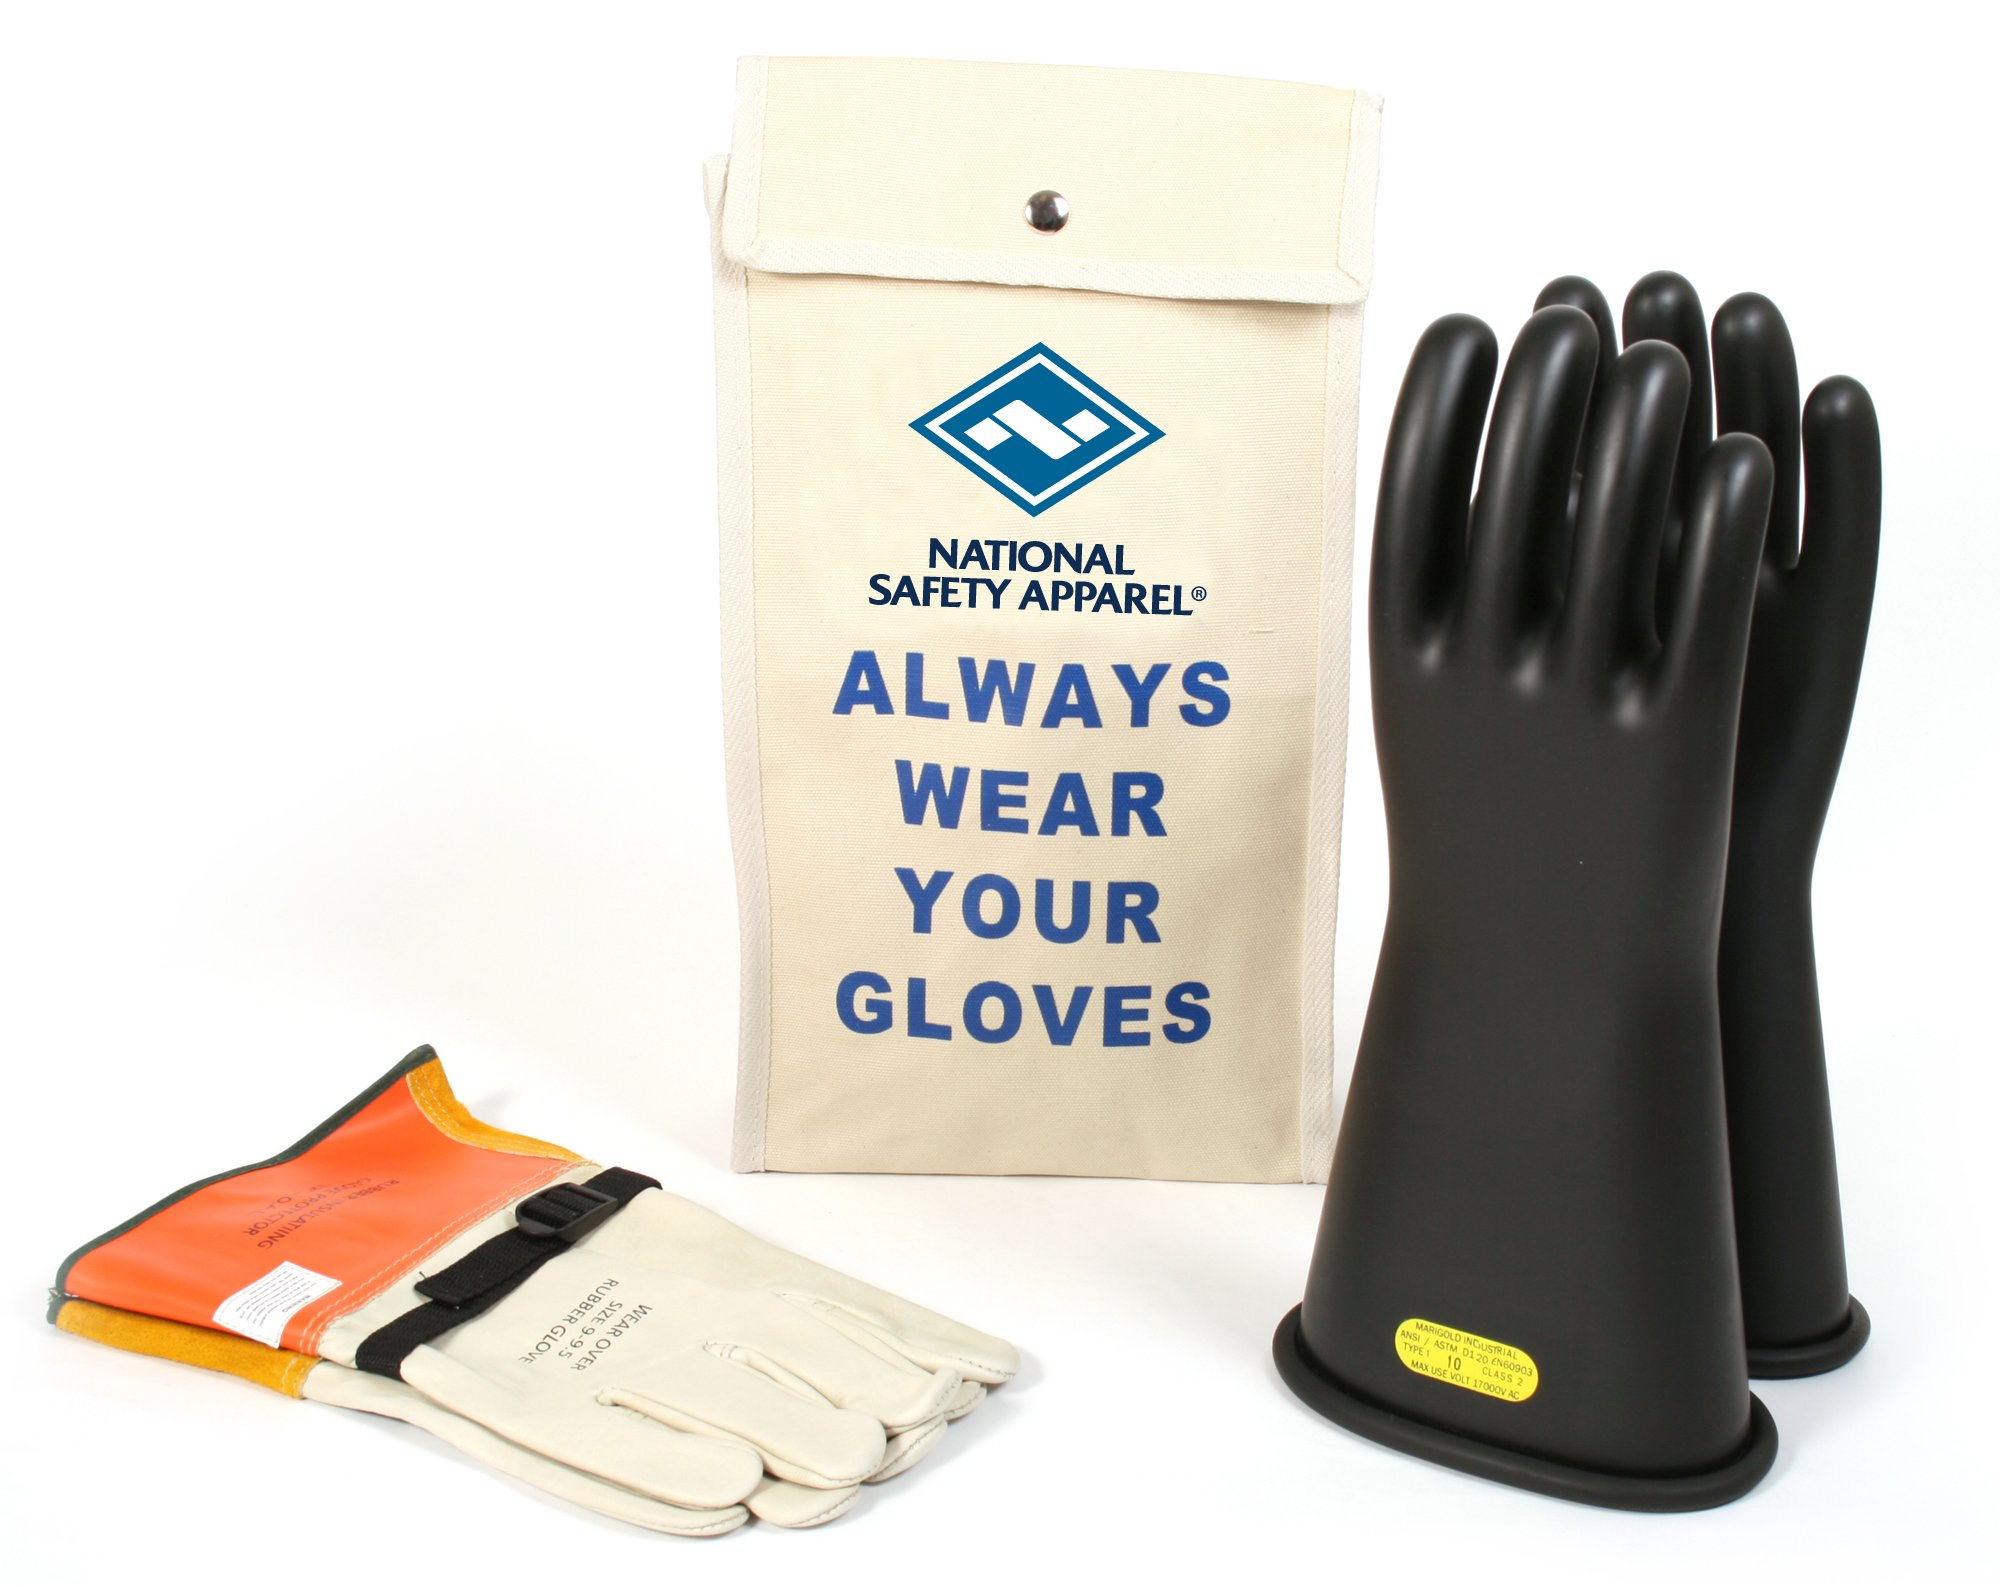 National Safety Apparel KITGC211 Class 2 Rubber Insulating Voltage Glove Kit, Size 11